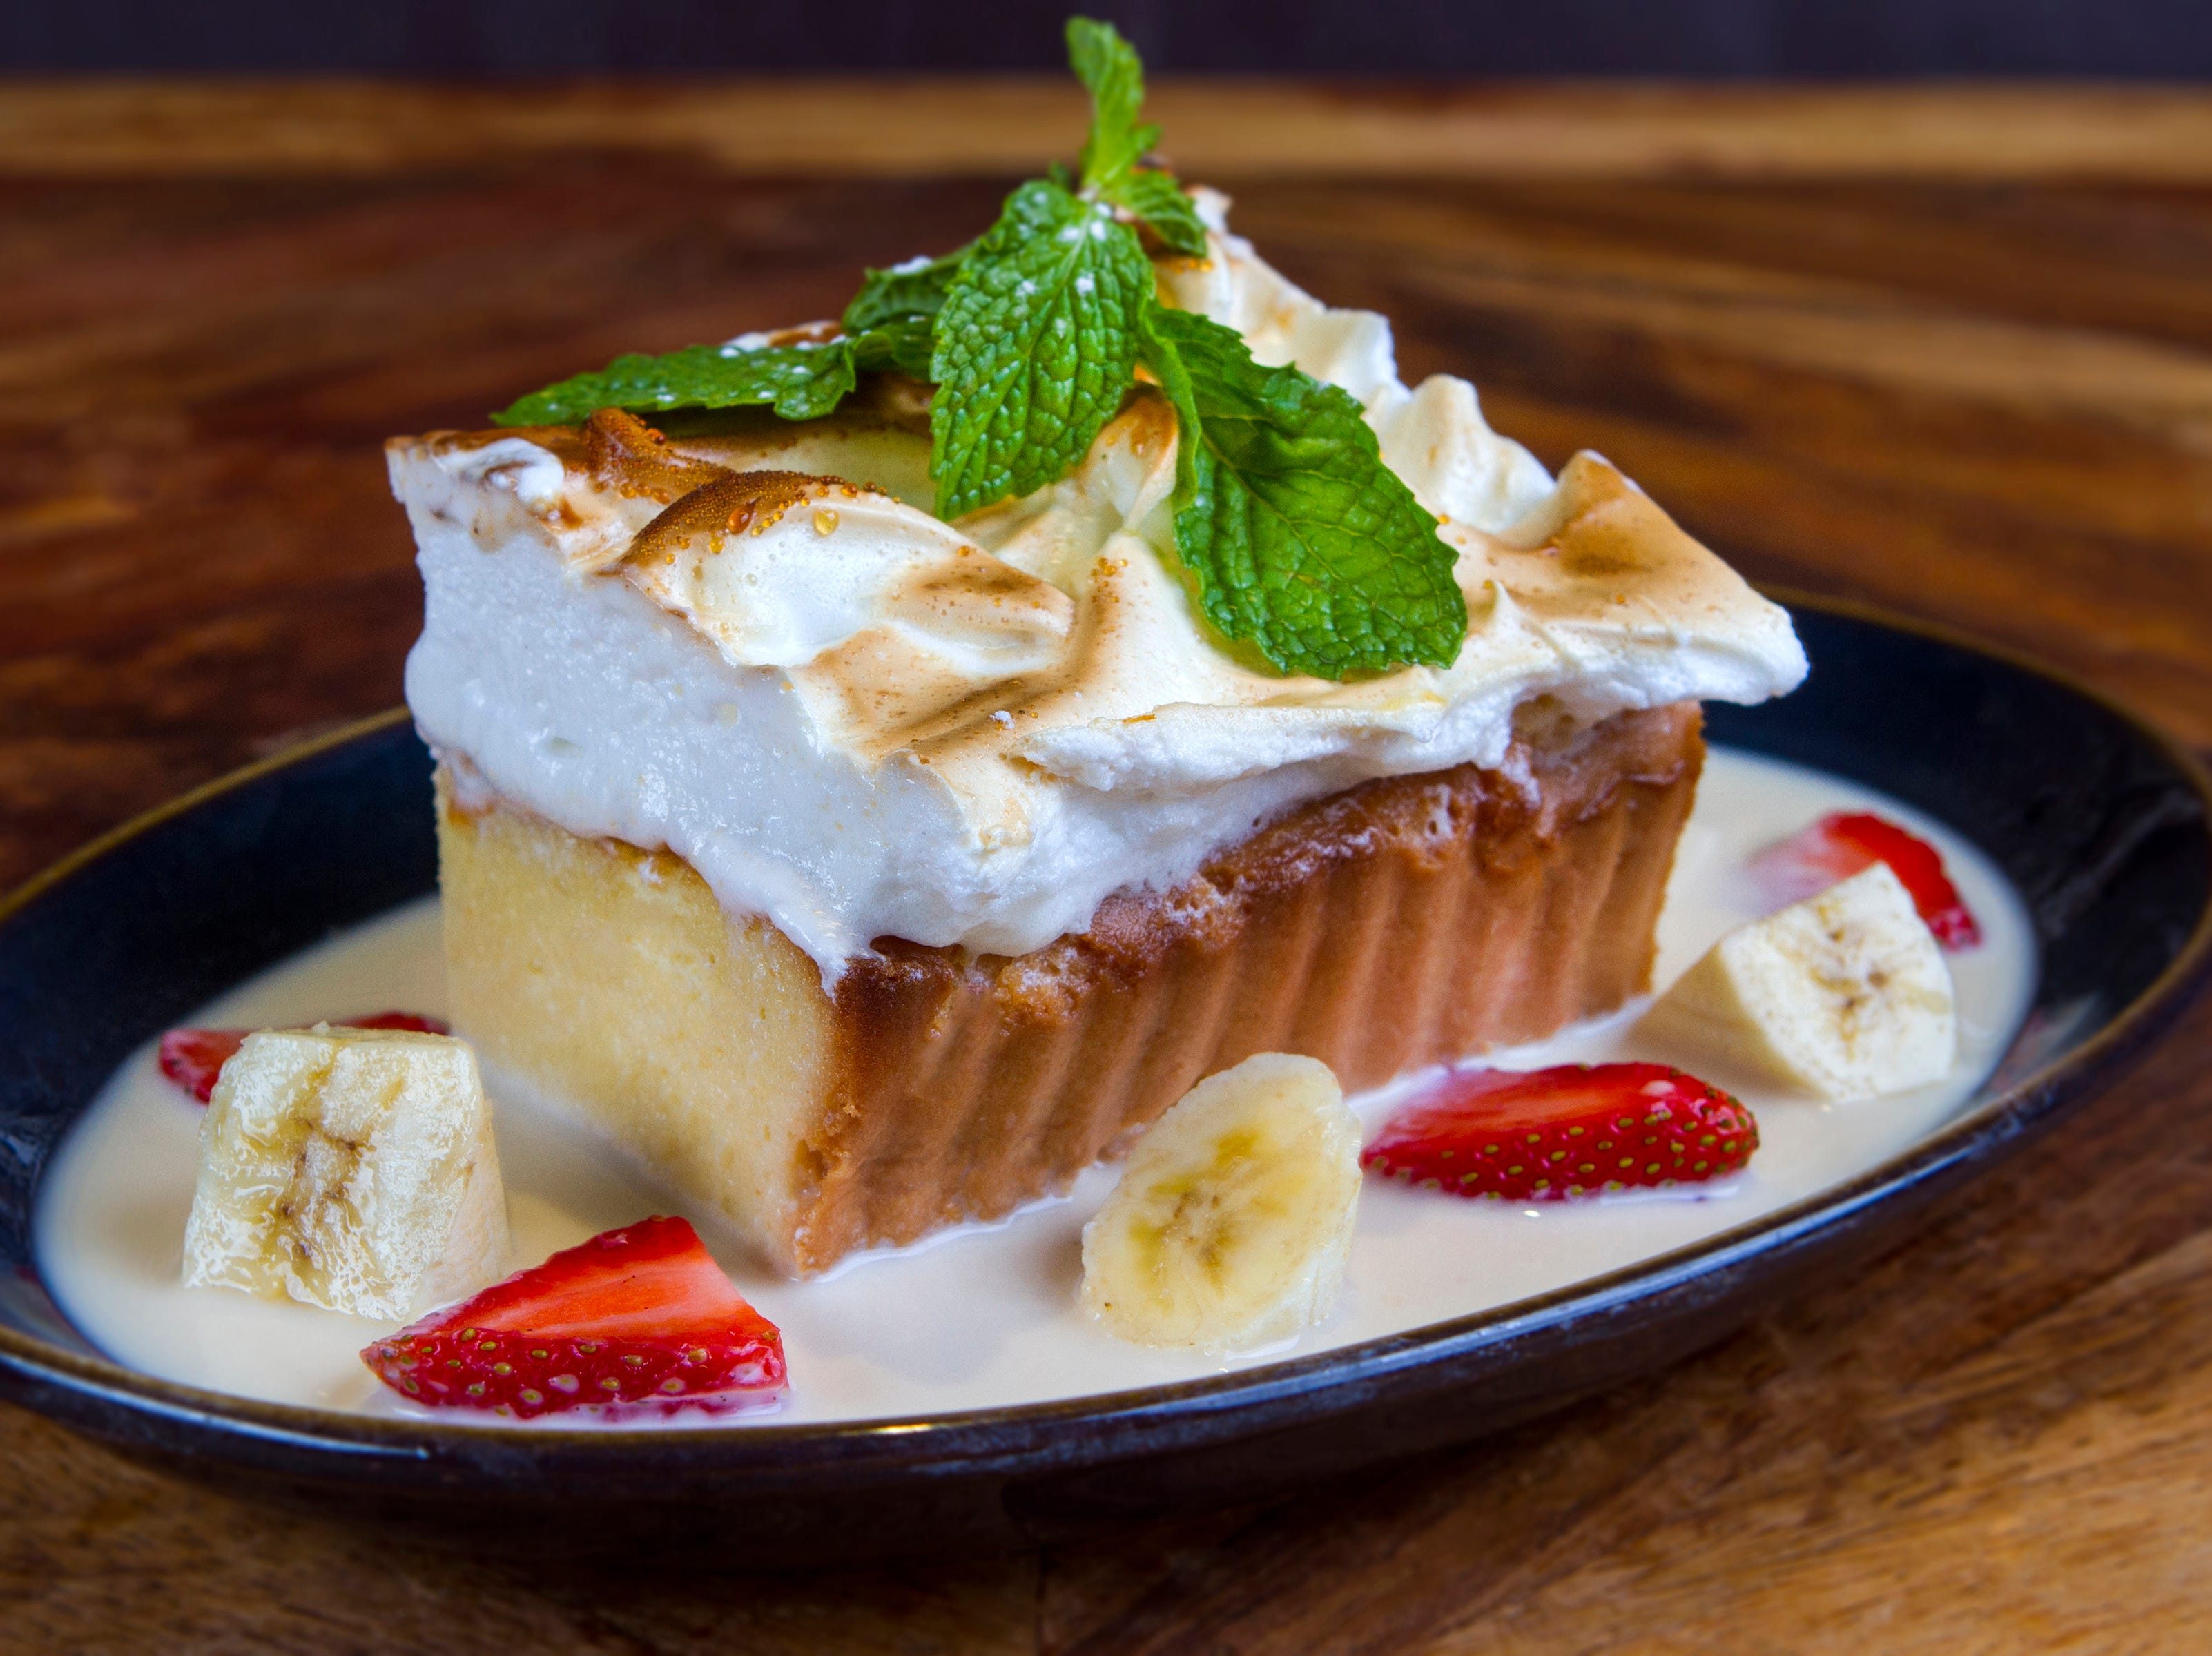 Tres leches cake for dessert at Rocco's Tacos & Tequila Bar.